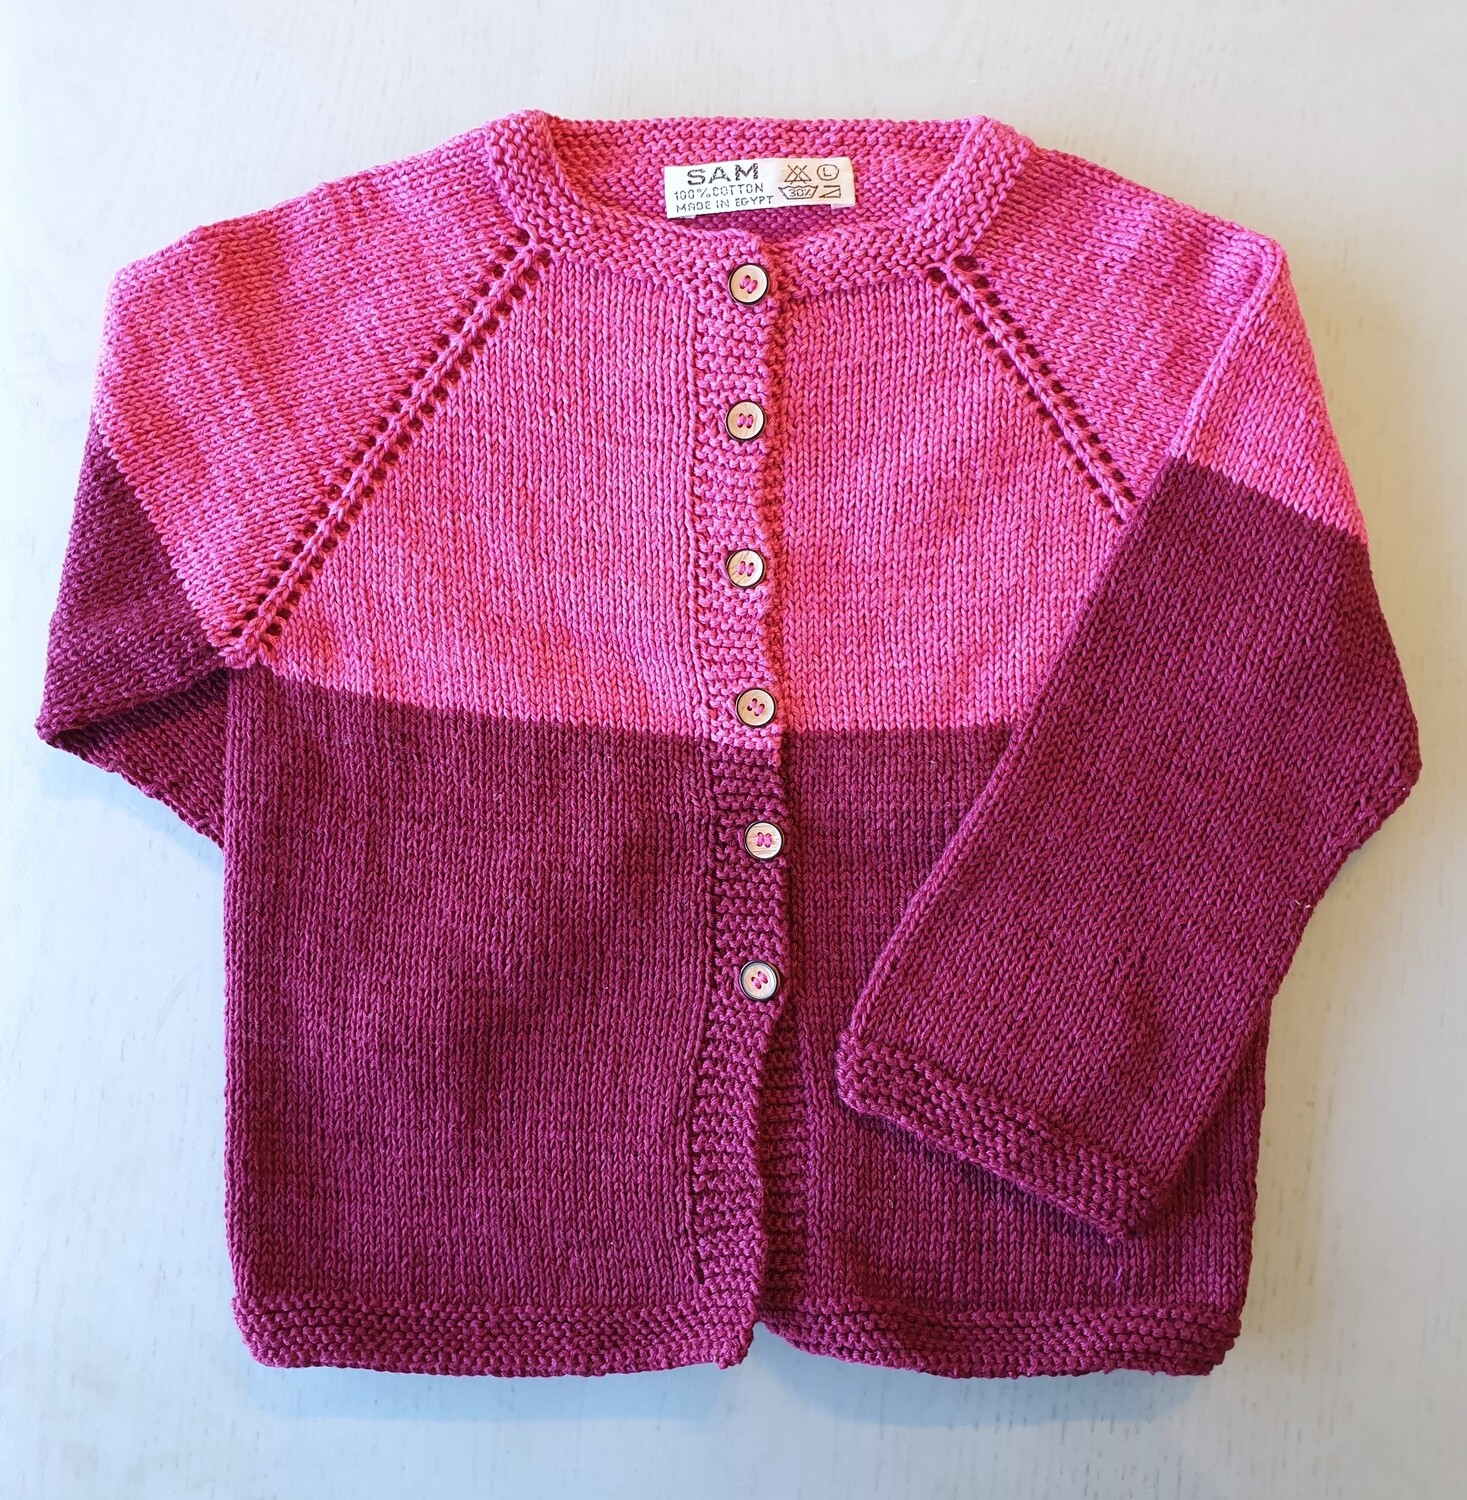 Two-tone Fuchsia & Burgundy Striped Jacket (Large)